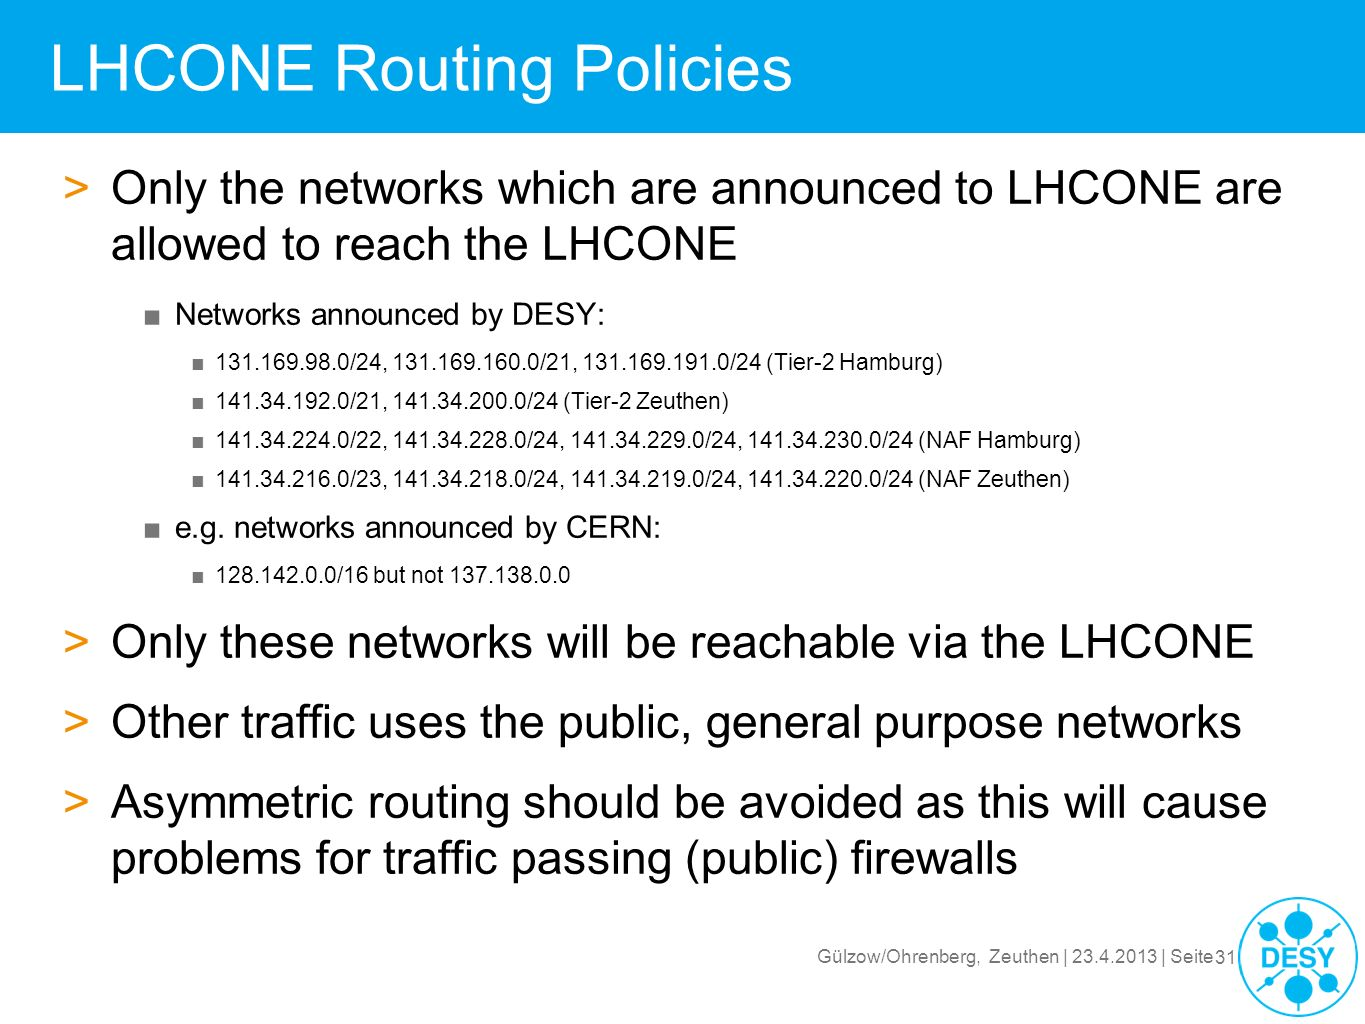 Gülzow/Ohrenberg, Zeuthen | 23.4.2013 | Seite 31 LHCONE Routing Policies >Only the networks which are announced to LHCONE are allowed to reach the LHC